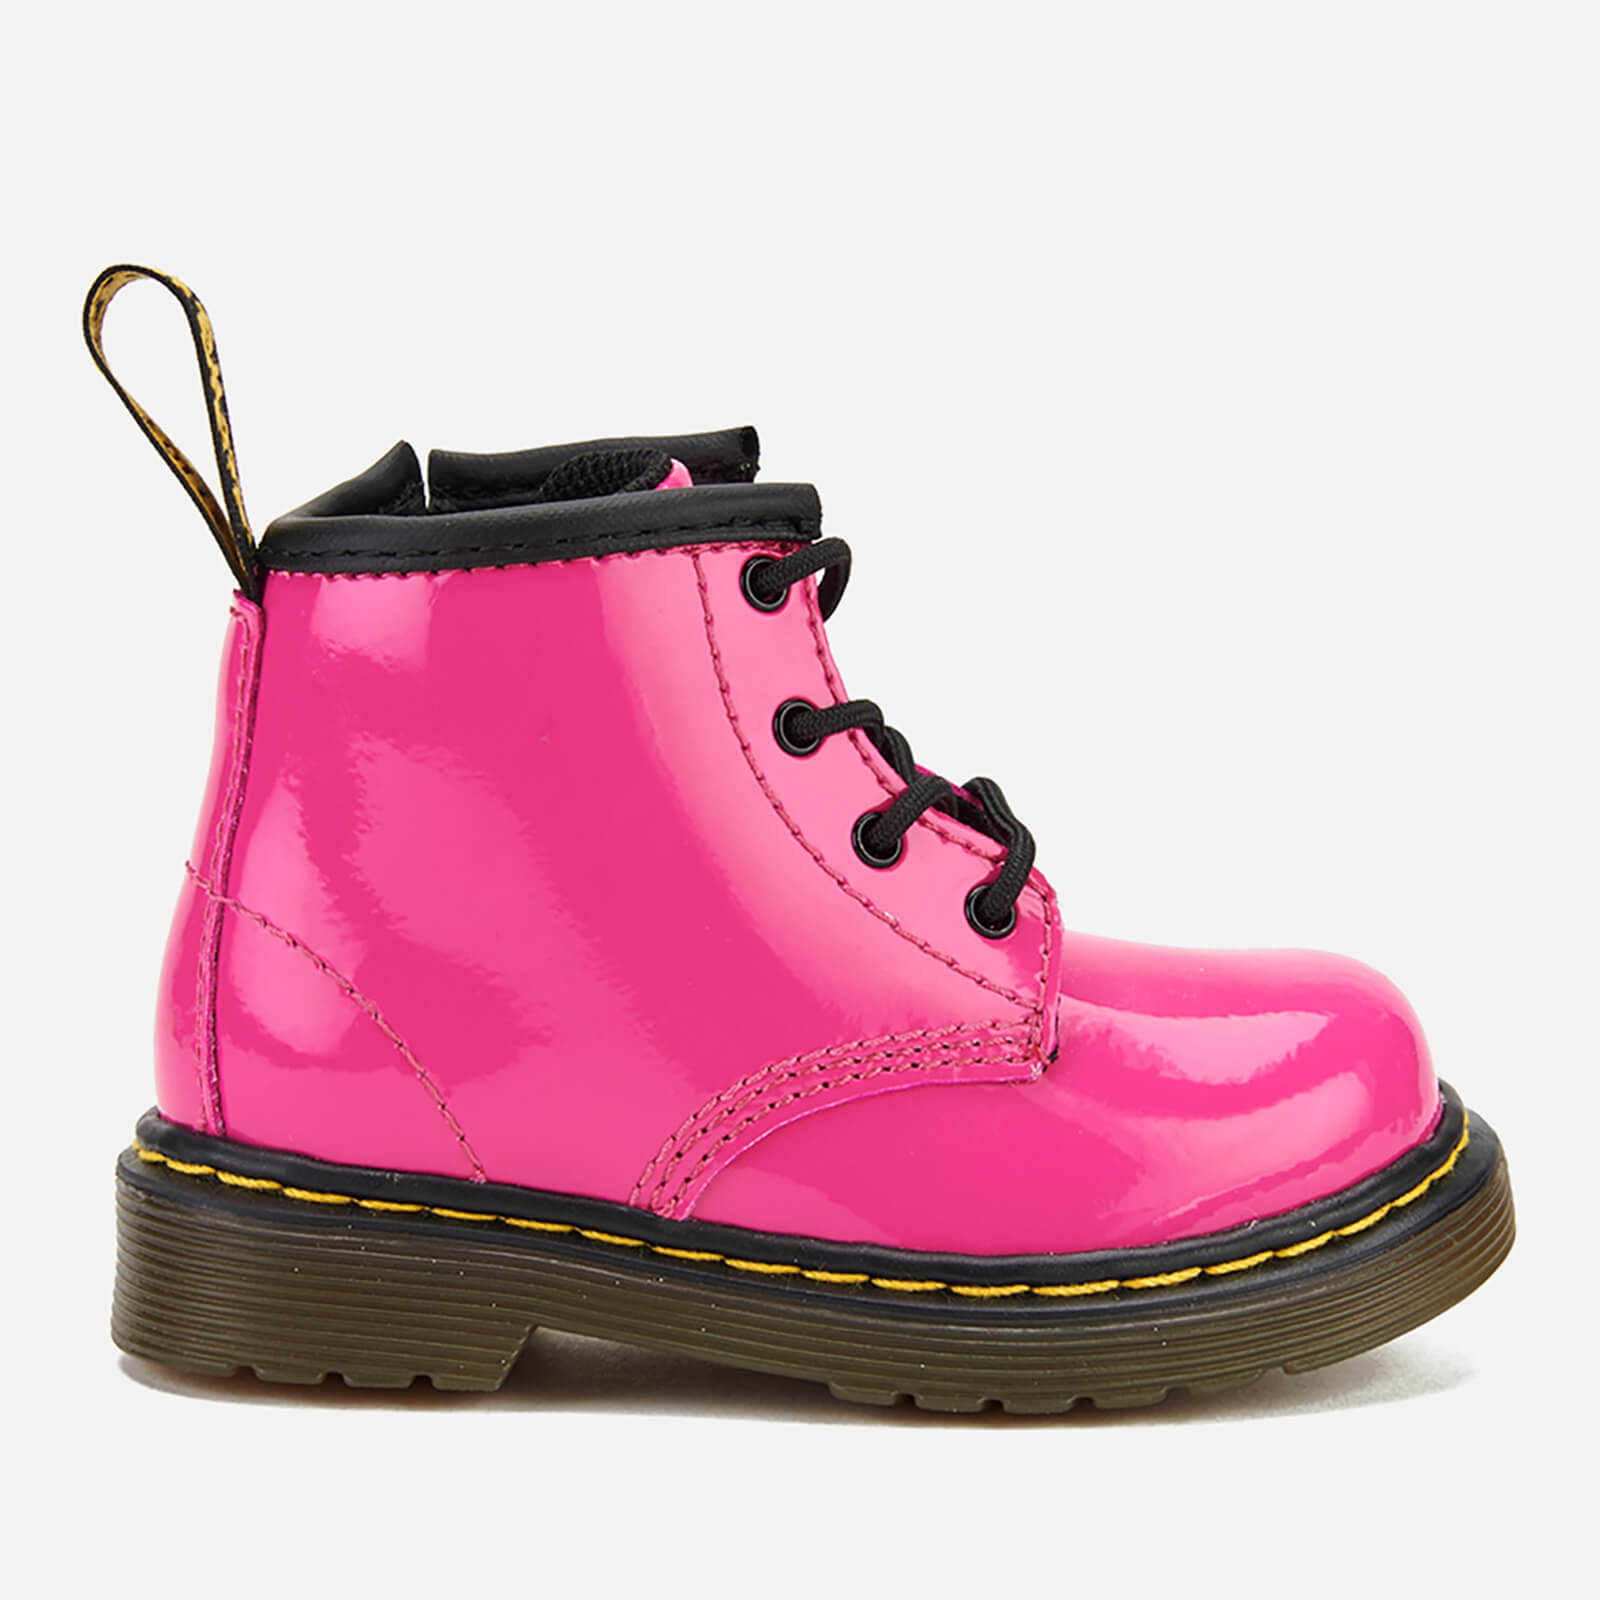 Dr. Martens Toddlers' 1460 I Patent Lamper Lace Up Boots Hot Pink